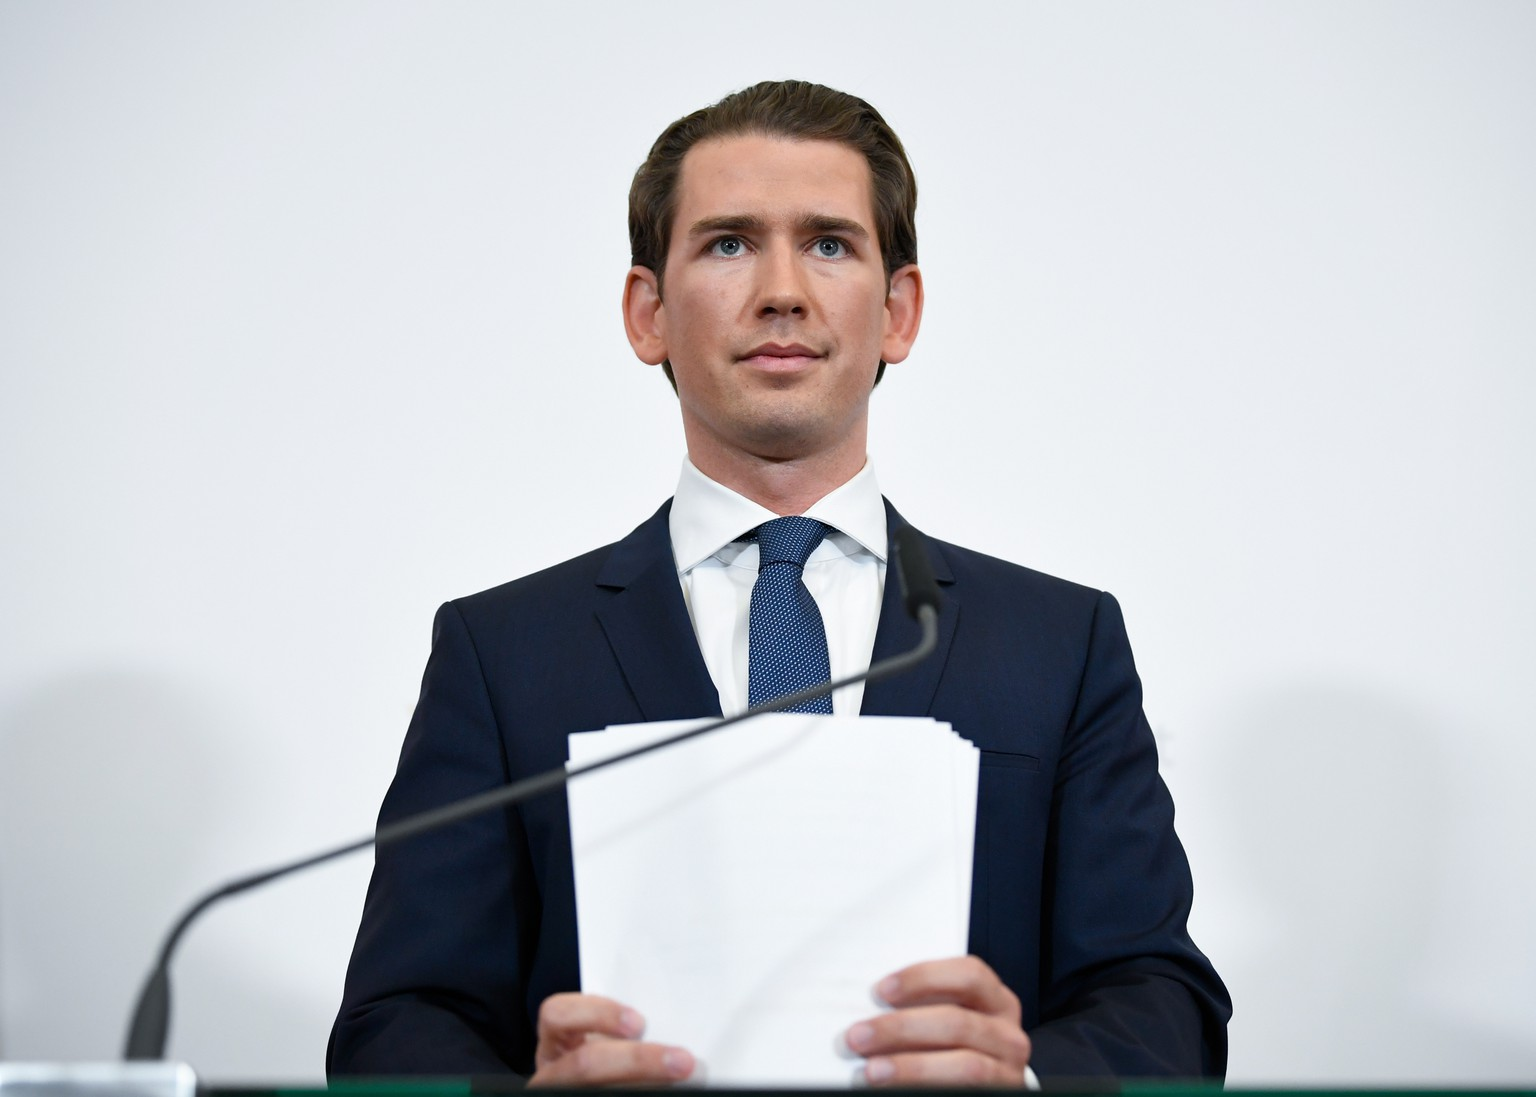 epa07582303 Austrian Chancellor Sebastian Kurz holds his speech manuscript after announcing new elections in Austria on a statement in Vienna, Austria, 18 May 2019. Austrian Vice Chancellor Strache on 18 May 2019 said he will step down from his post as media caught the far-right FPOe's leader Strache in a corruption allegations scandal. German magazine 'Der Spiegel' and newspaper 'Sueddeutsche Zeitung' published on 17 May 2019 a secretly recorded video which appeared to show Strache in Ibiza, Spain, in July 2017, meeting an alleged niece of a unknown Russian oligarch who wanted to invest large sums of money in Austria. In return for election campaign donations, Strache is alleged to have promised public contracts in the event of his party joining the government.  EPA/CHRISTIAN BRUNA